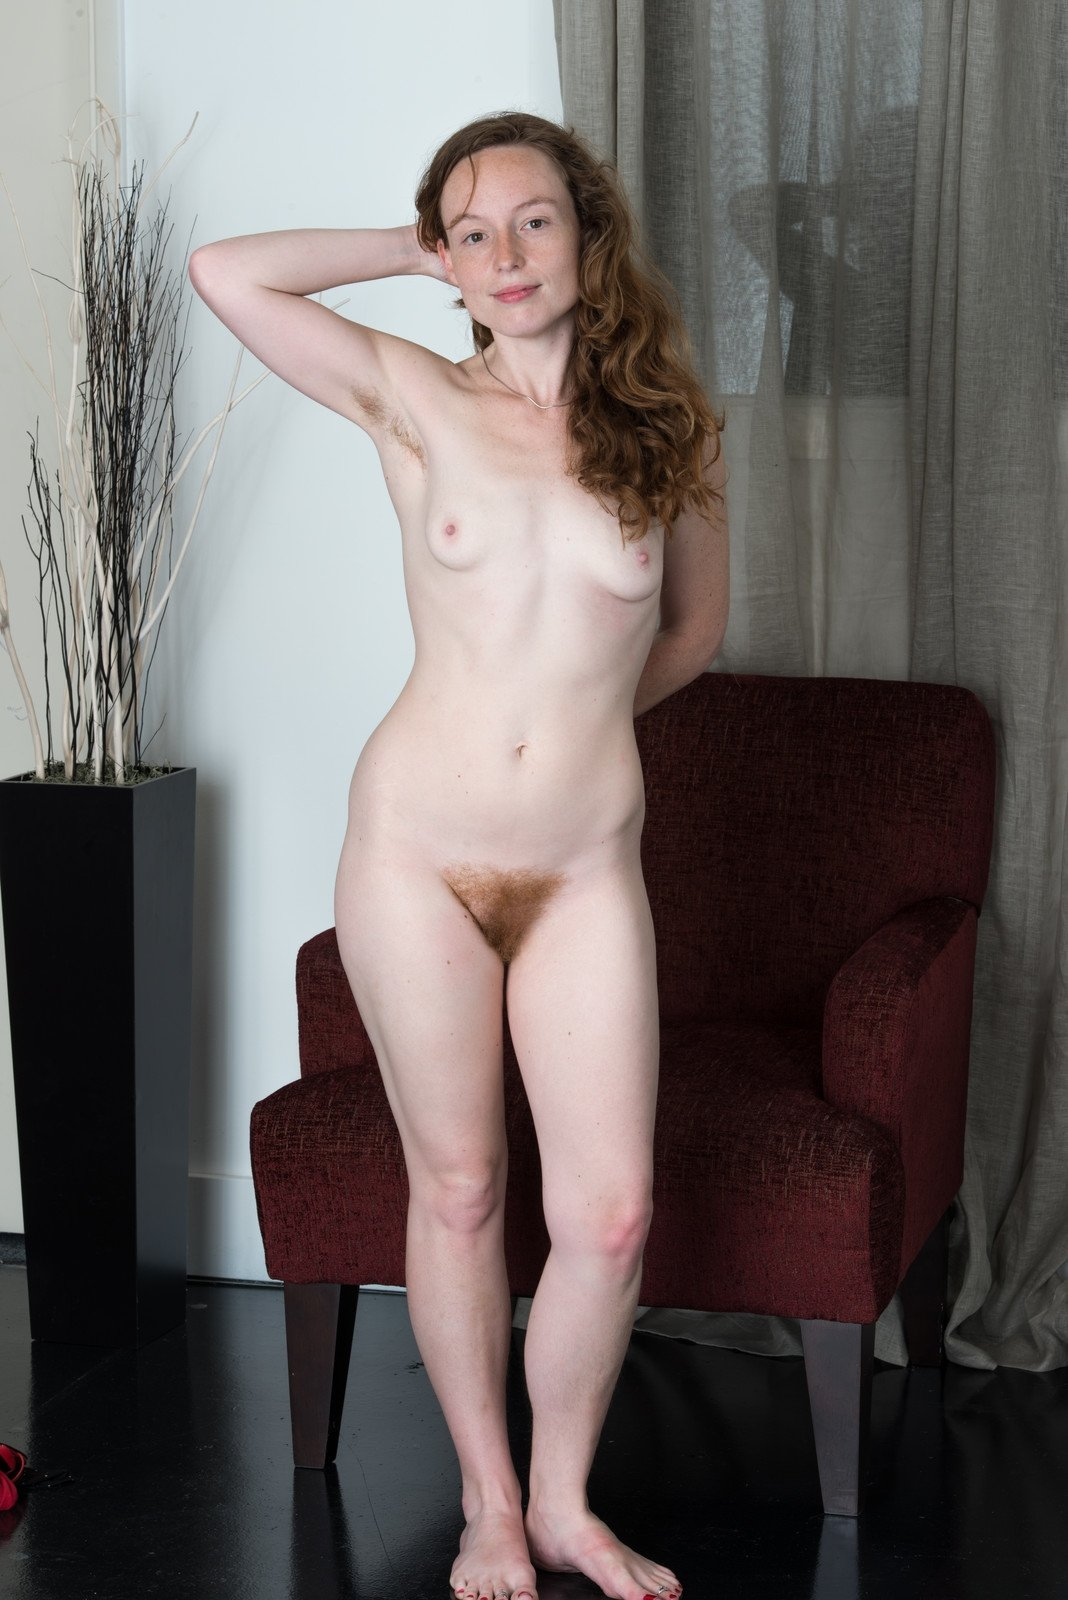 best of Mom affair son sex home alone7